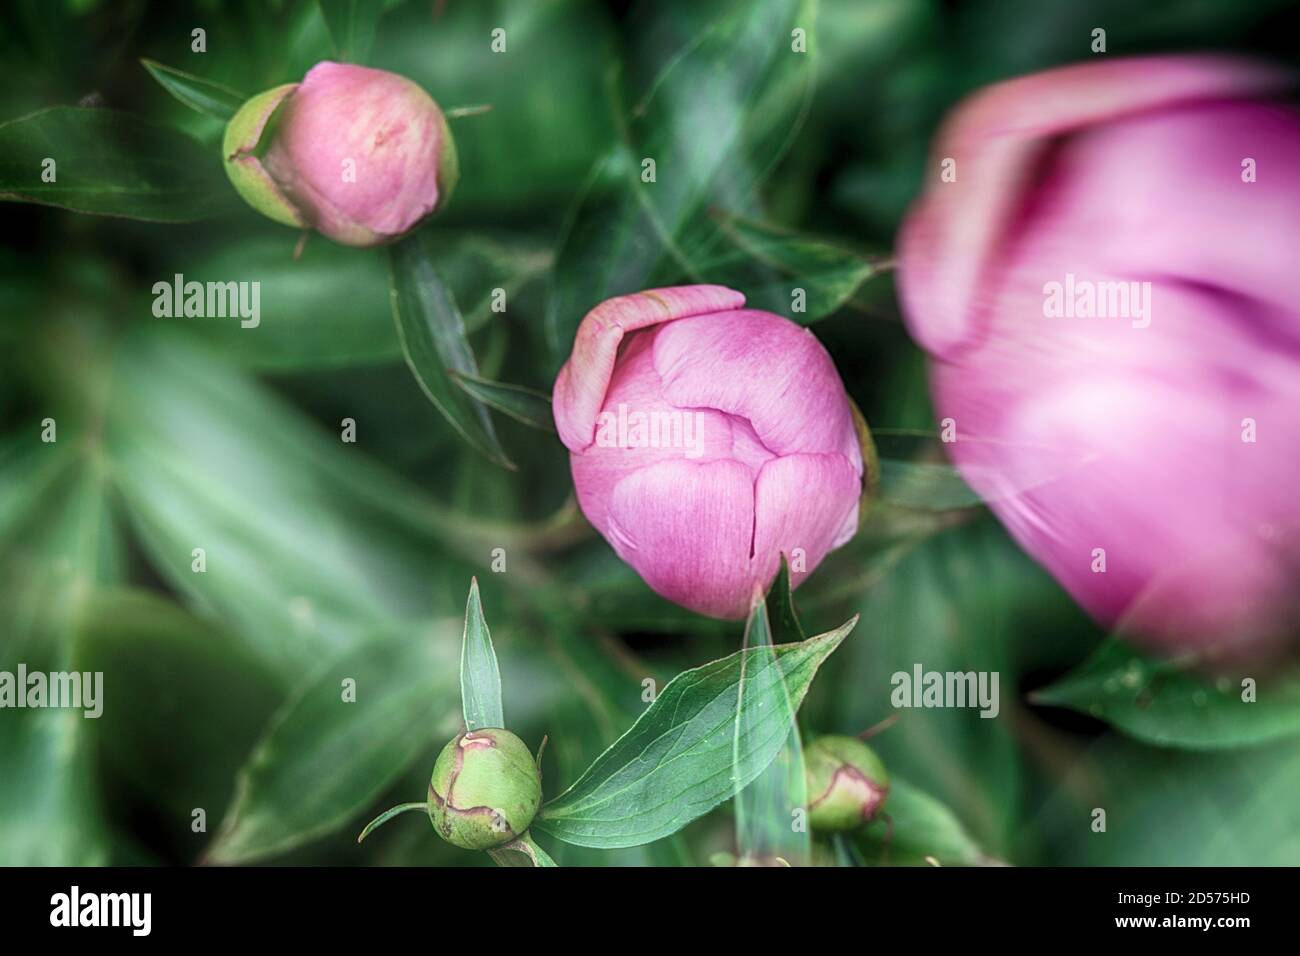 Pink peony buds on a background of green leaves. Blurred background. Abstract natural postcard or picture for wallpaper. Stock Photo